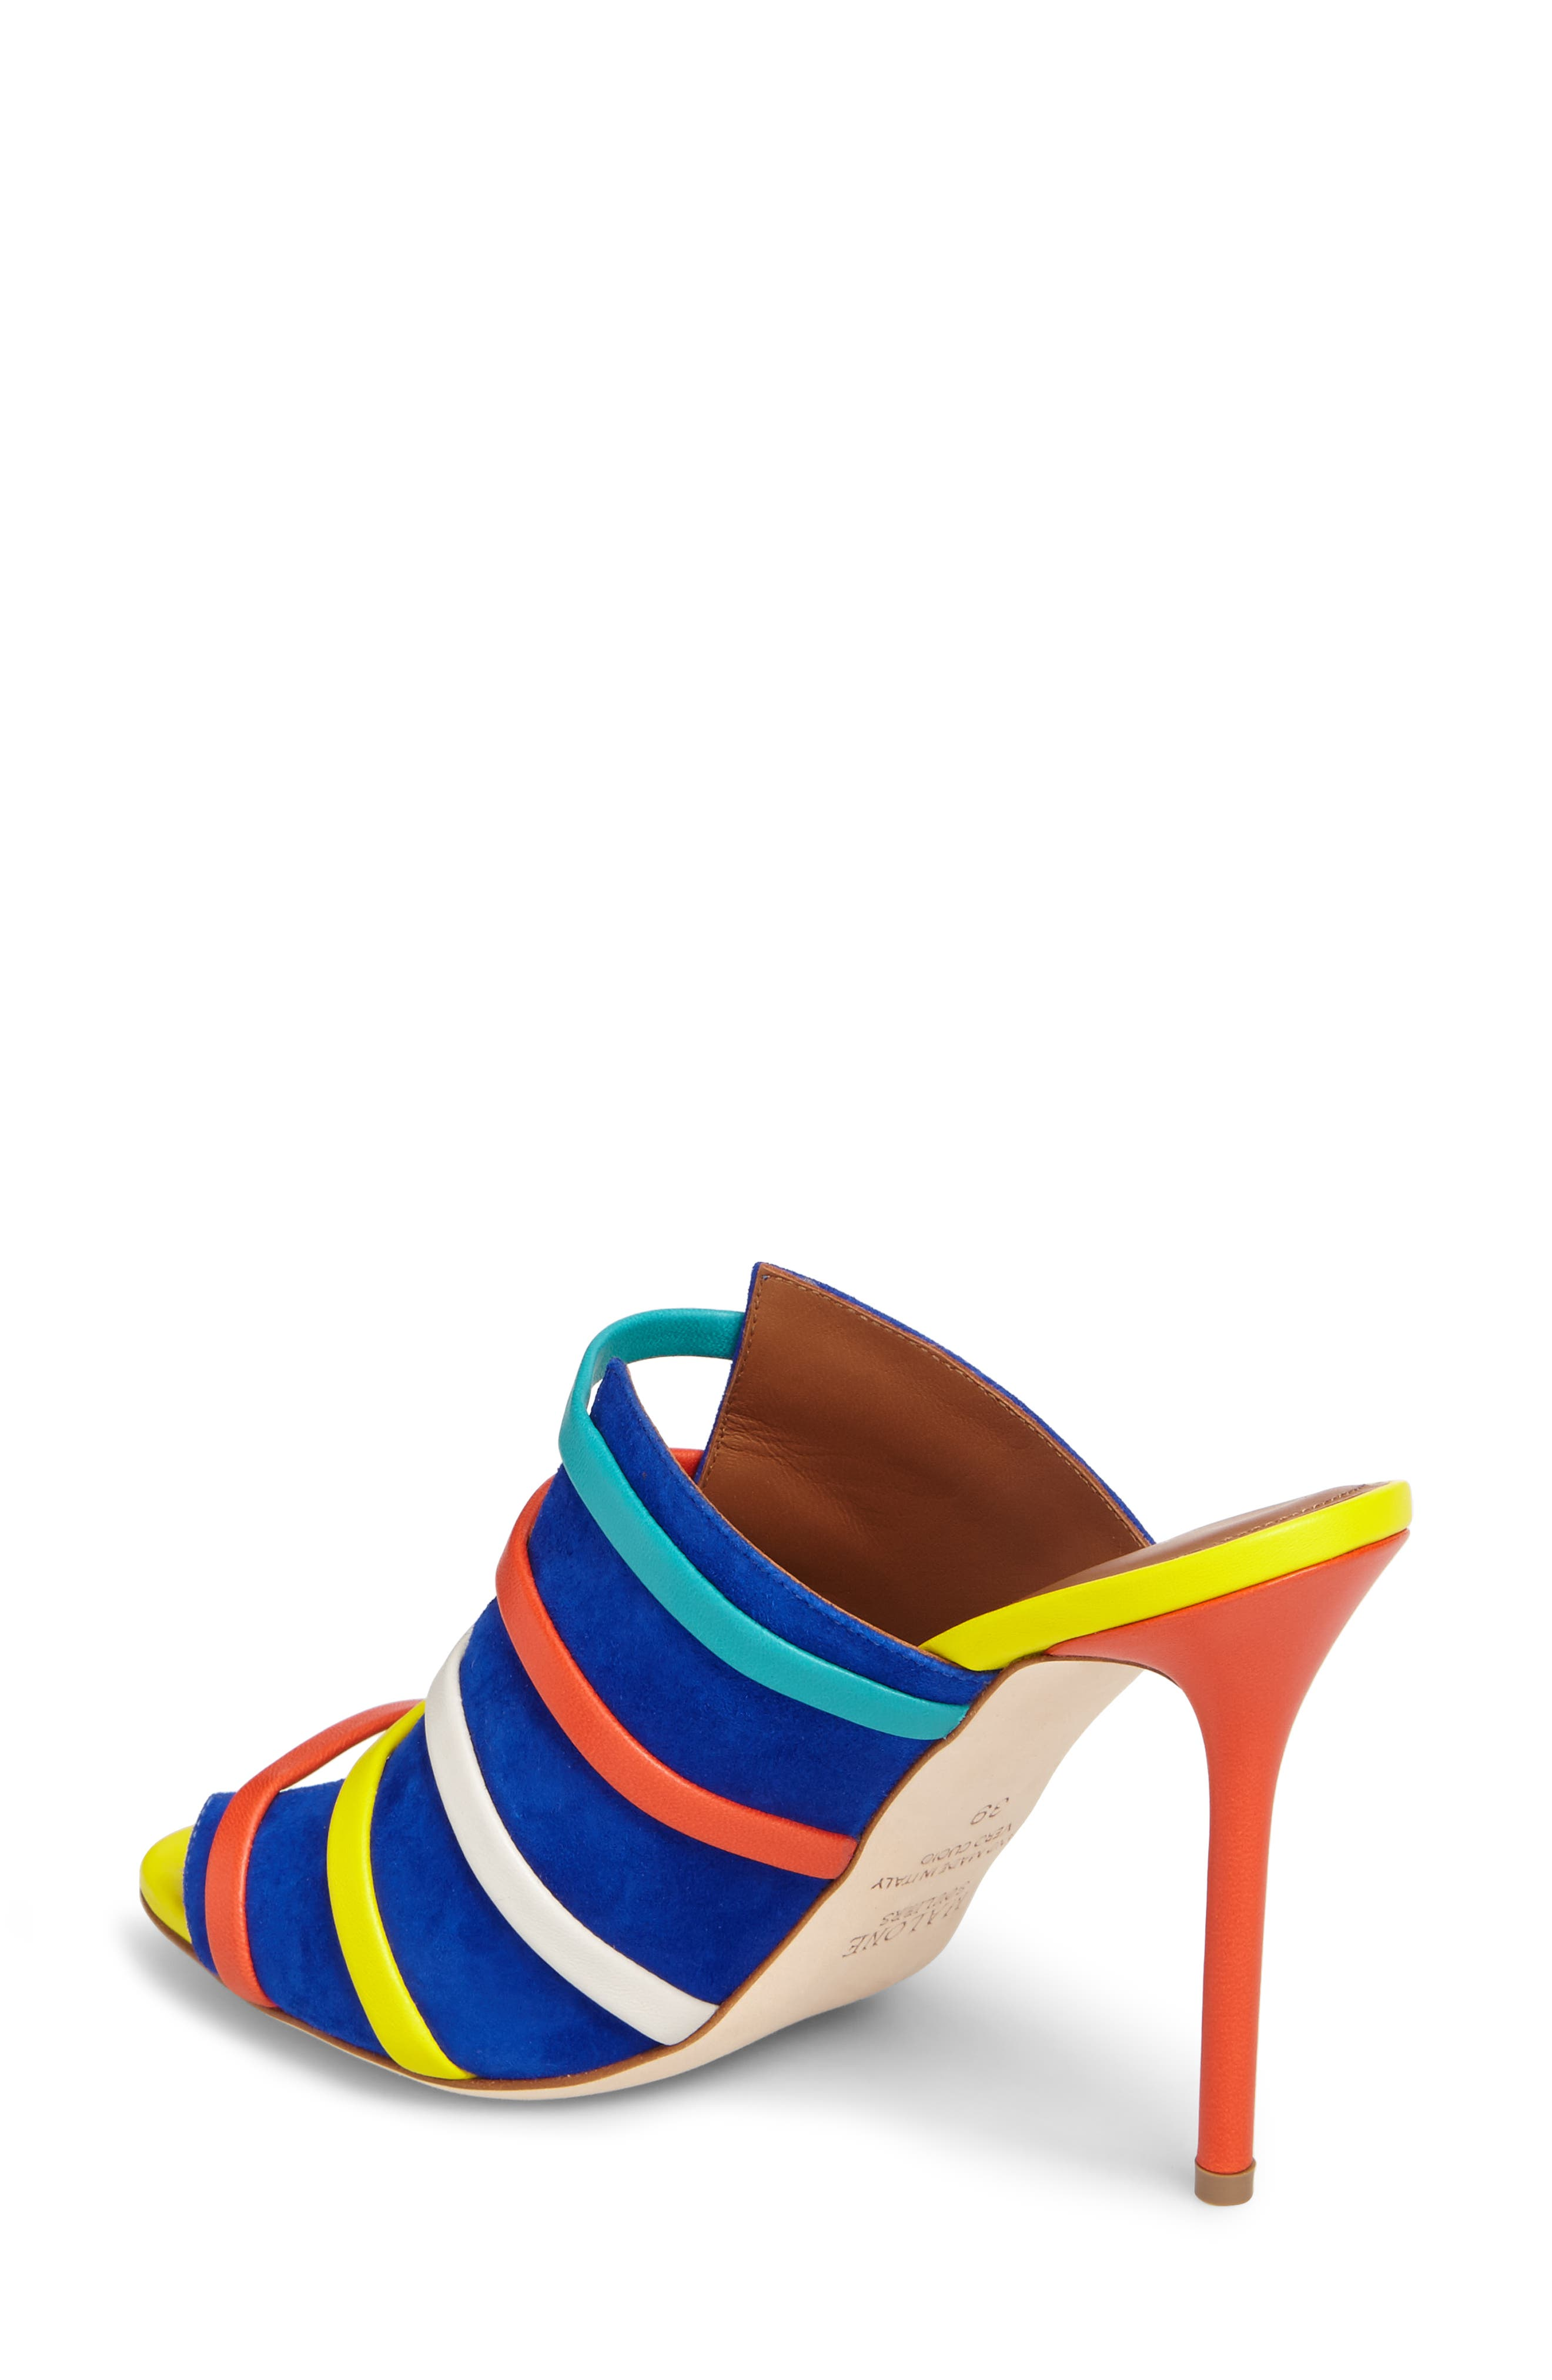 Zoe Banded Mule,                             Alternate thumbnail 2, color,                             Electric Blue/ Flame/ Yellow